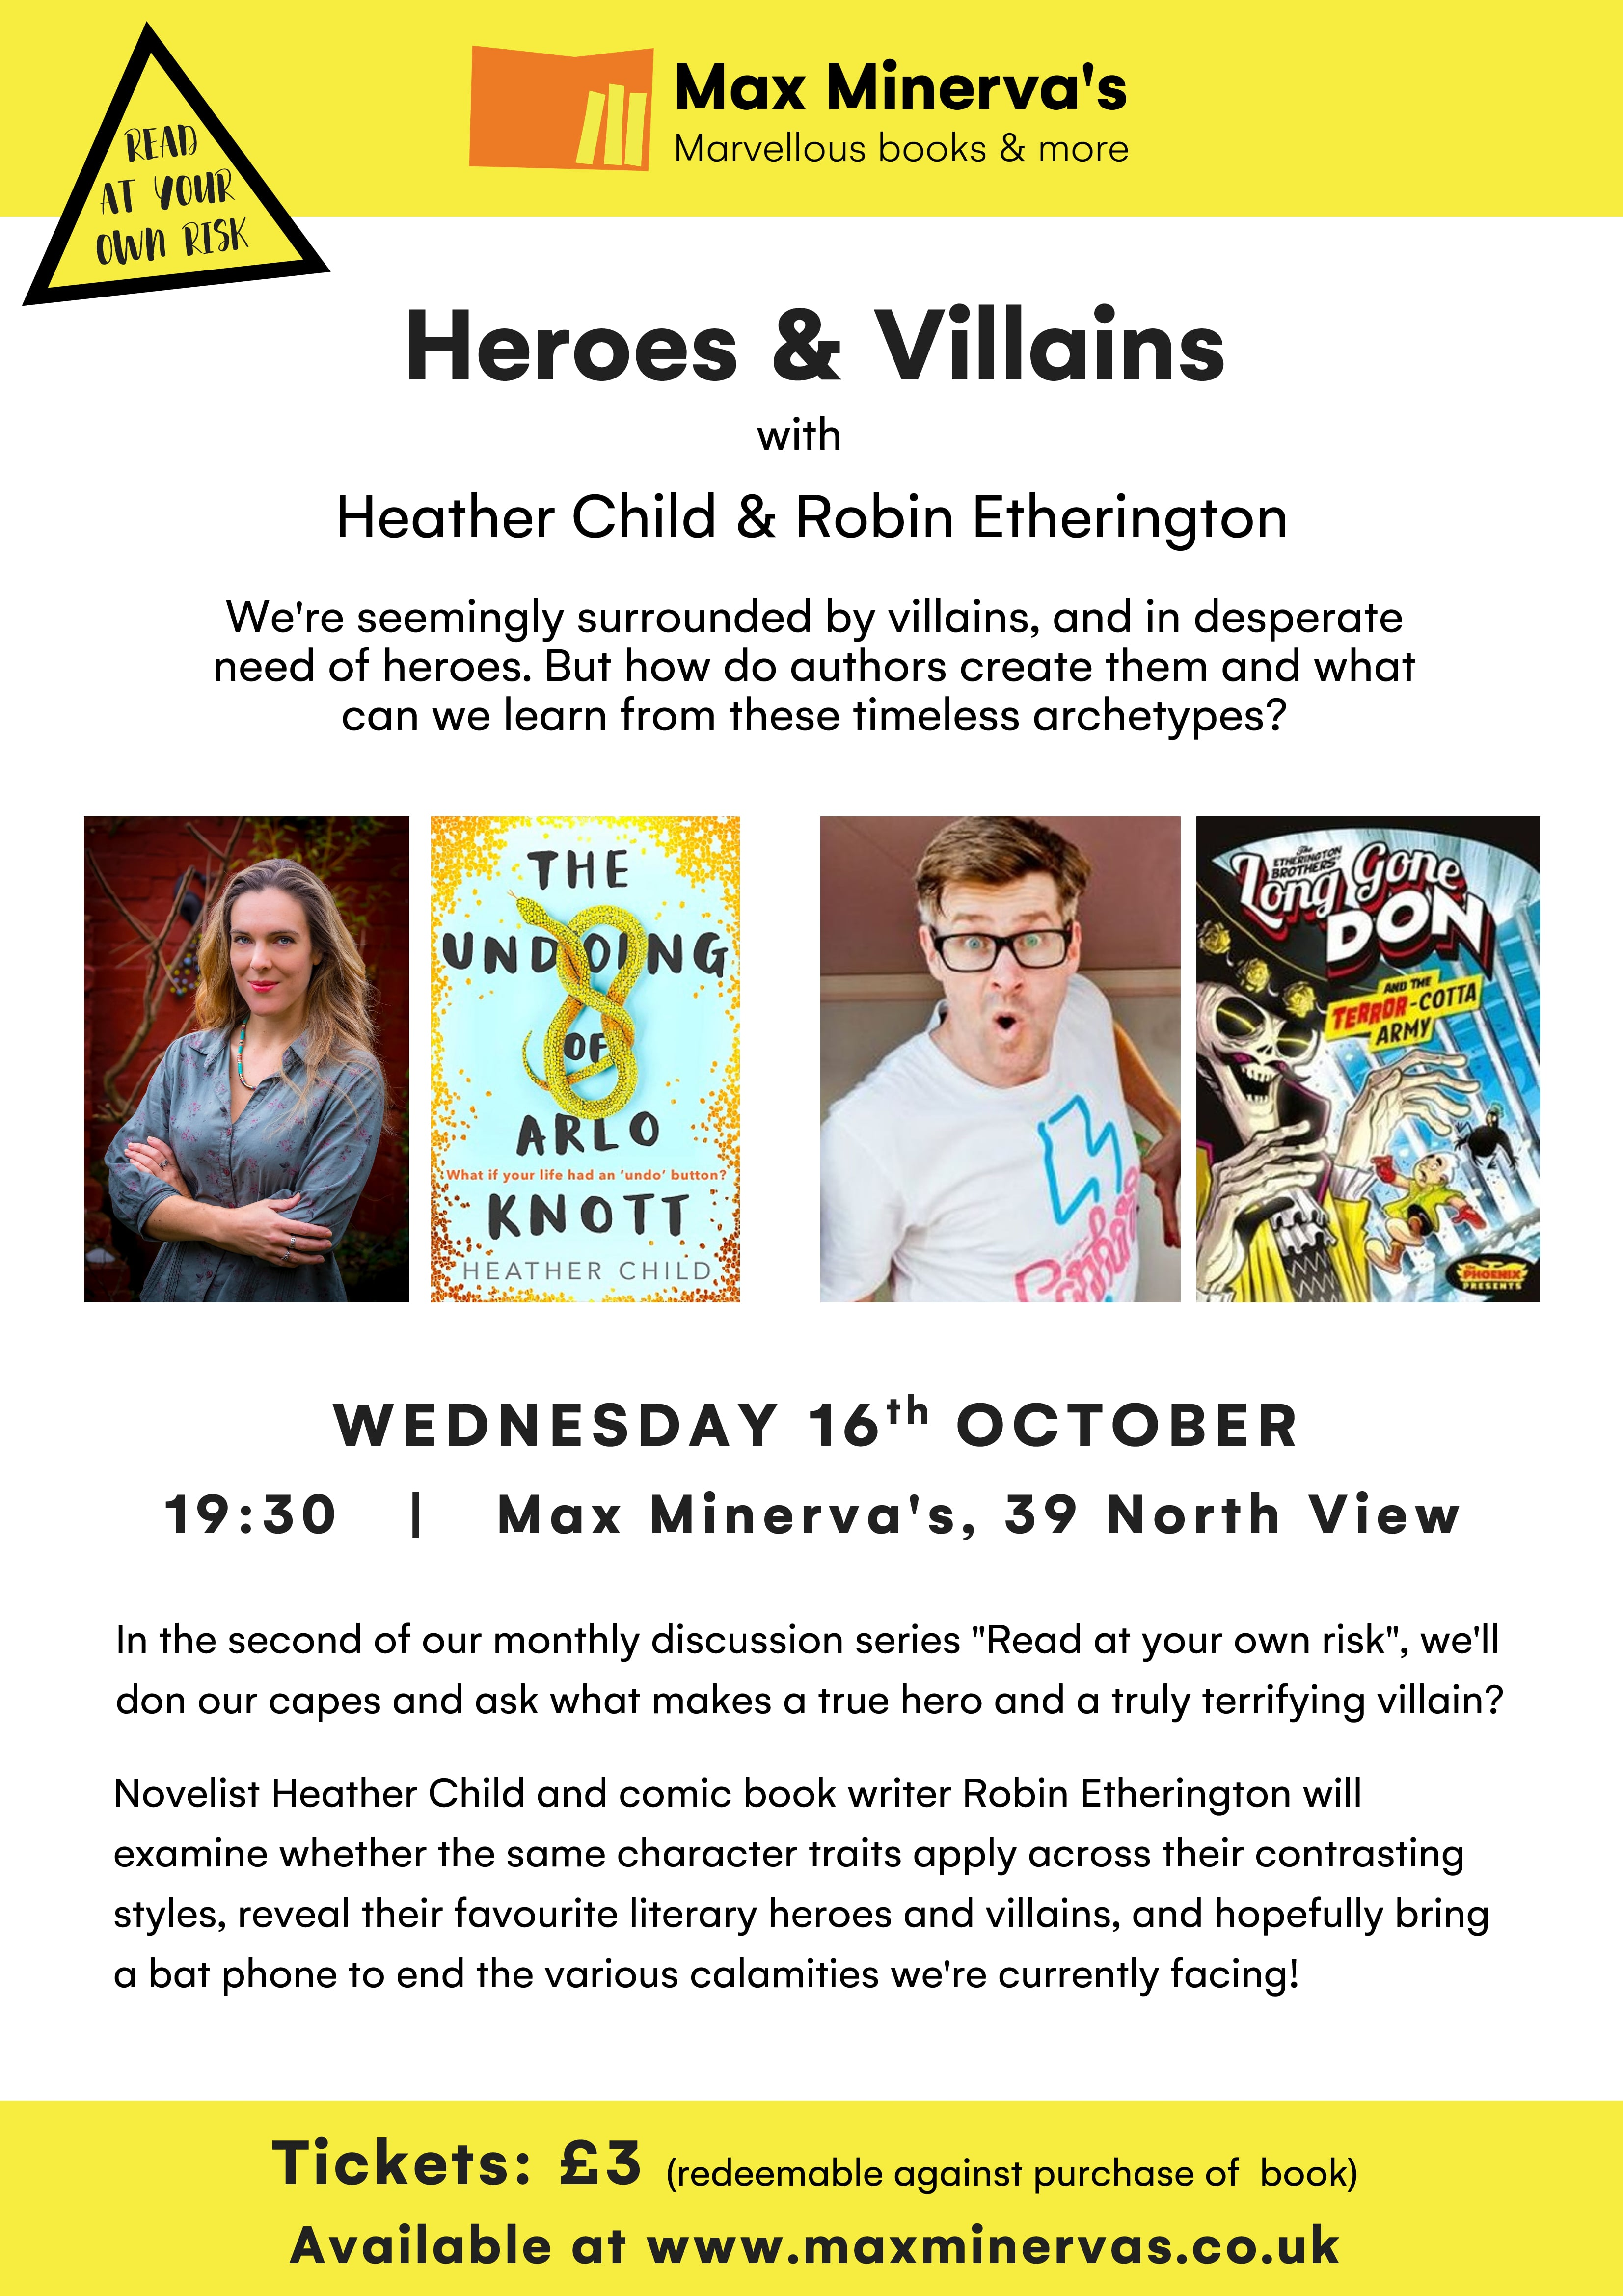 Poster for book event with Heather Child at Max Minervas bookshop